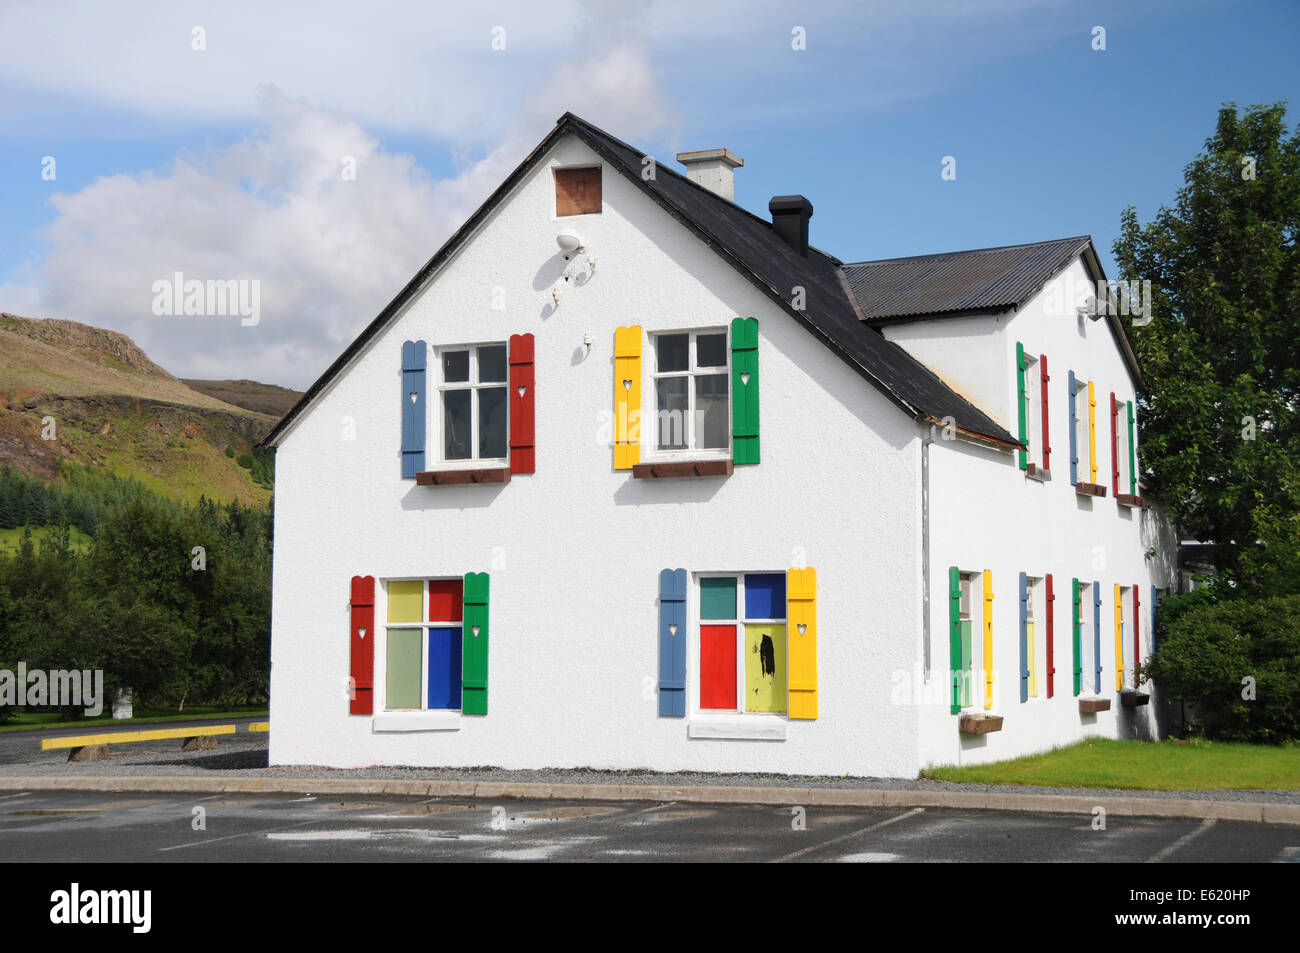 Colorful school house at Hveragerdi geothermal area, Hveragerdi valley, Hveragerði, Hveragerdisbaer, Iceland, - Stock Image